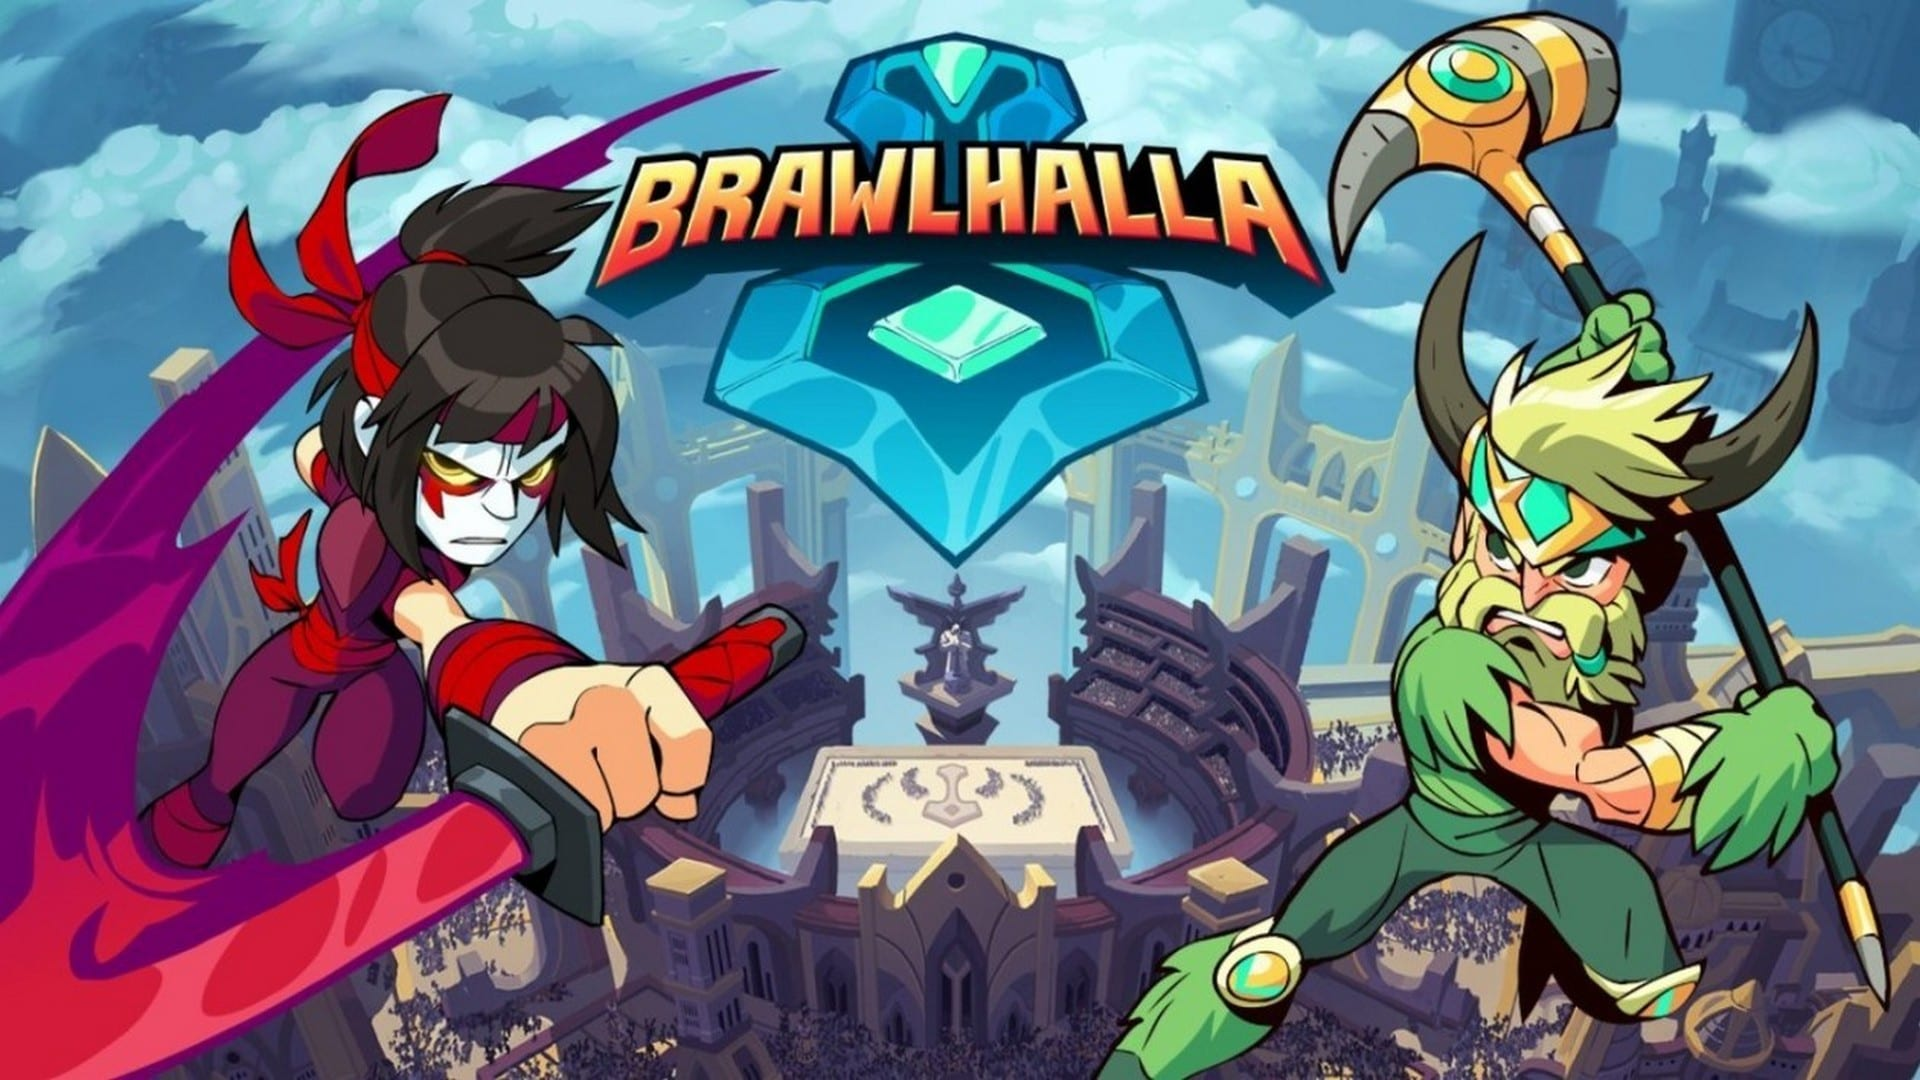 Free-To-Play BRAWLHALLA Coming To Mobile On August 6